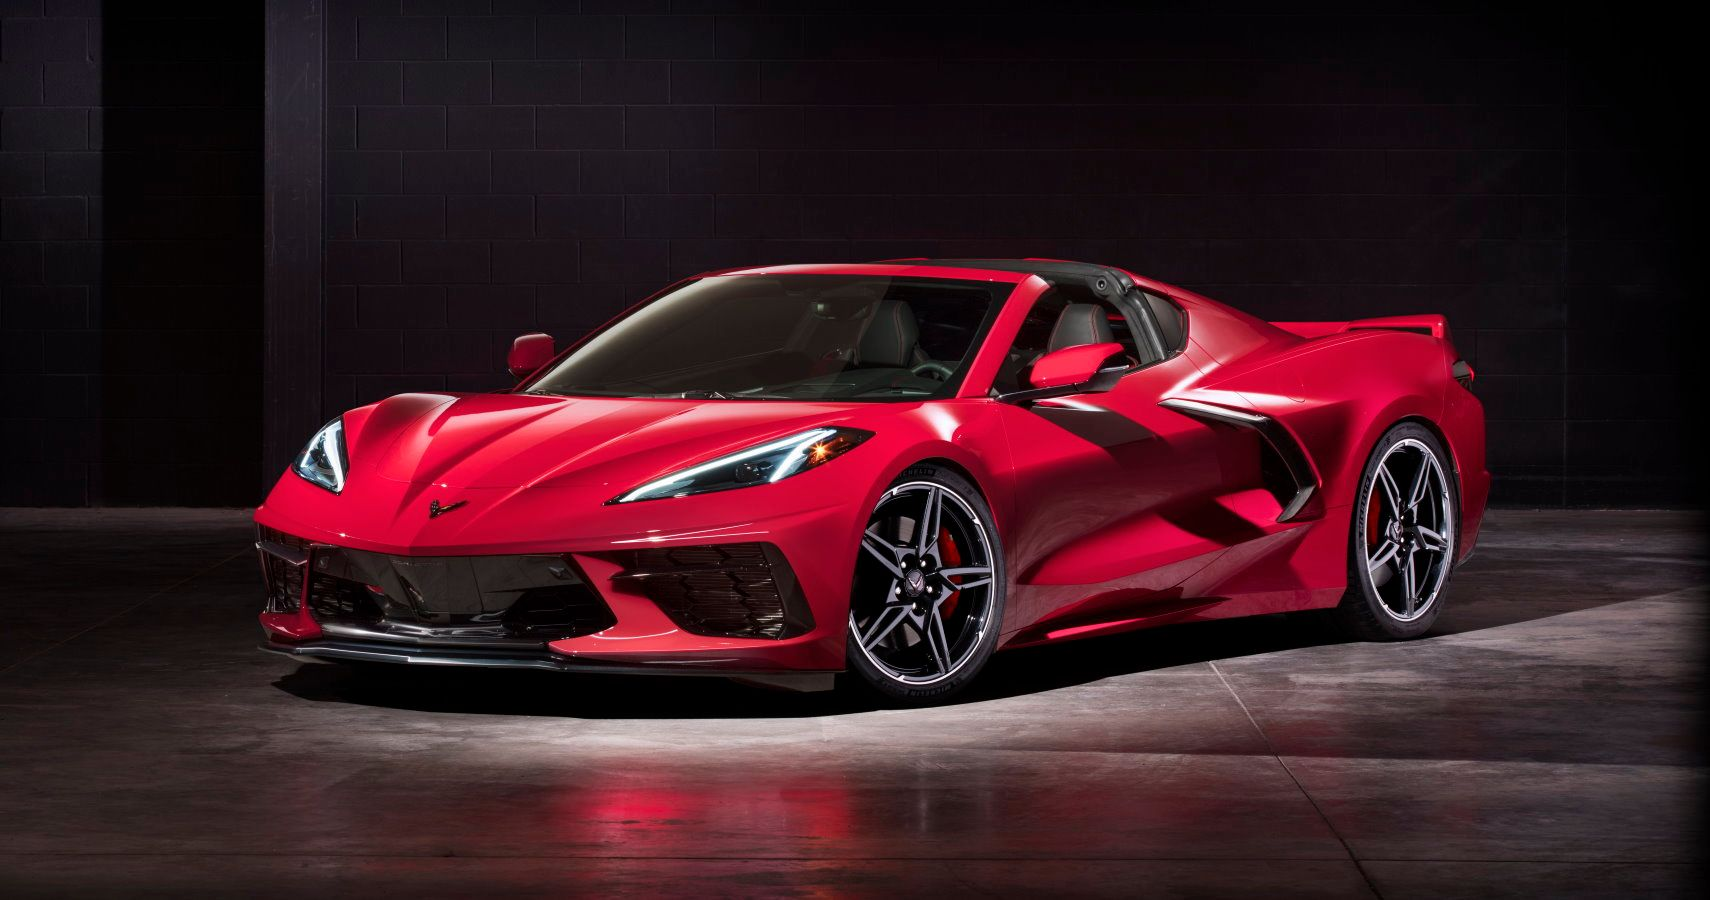 2020 Chevy Corvette Convertible Will Weigh 101 Pounds Over ...